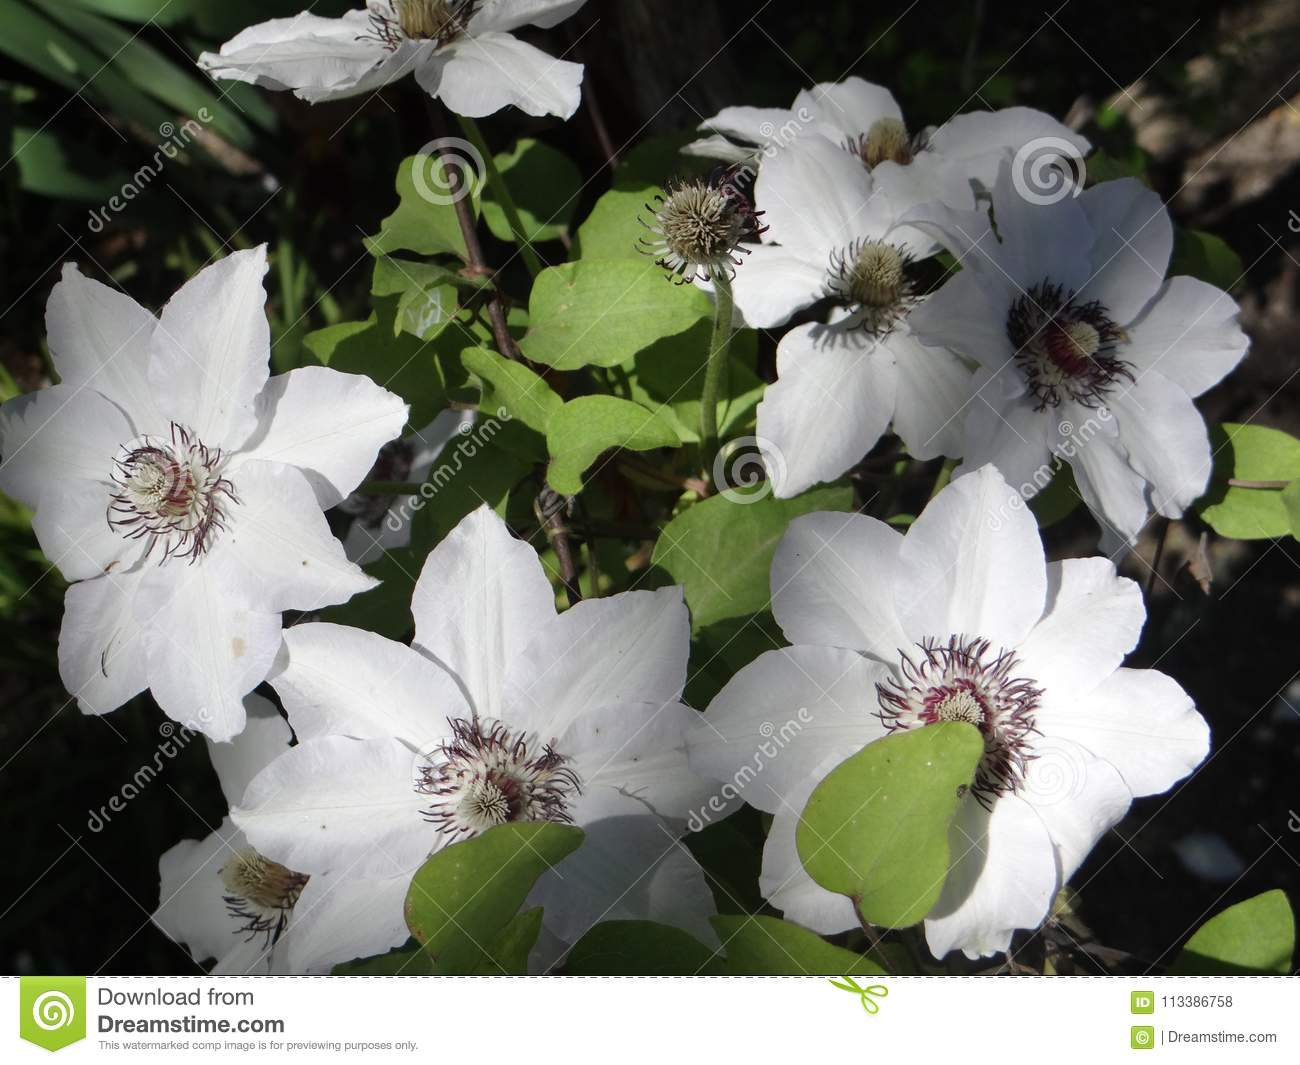 Large white flowers of clematis stock photo image of admire download large white flowers of clematis stock photo image of admire summer 113386758 mightylinksfo